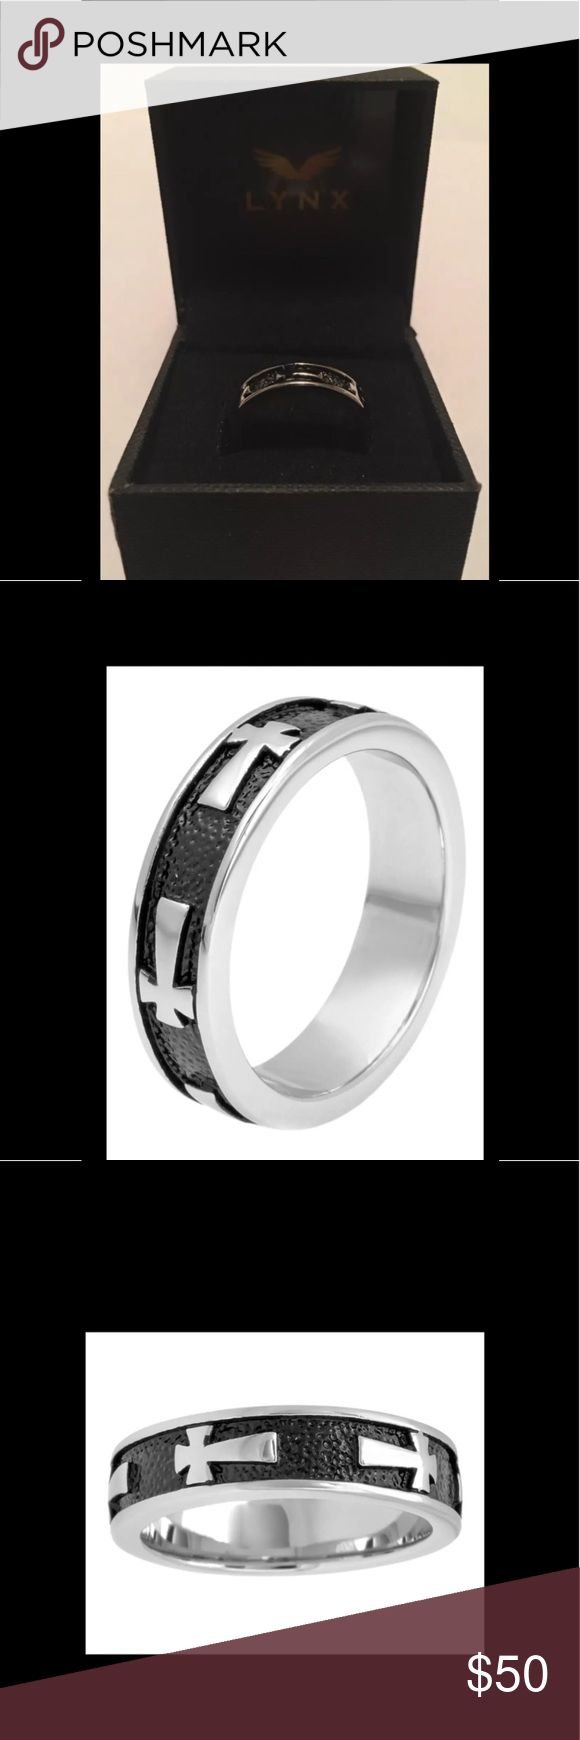 "MENS STAINLESS STEEL SIDEWAYS CROSS BAND ✅ "" LYNX "" MENS STAINLESS STEEL SIDEWAYS CROSS BAND 😀. Decorated with a sideways cross motif accentuated with black ion-plated stainless steel details! This men's band exemplifies your faith in a handsome way .....!   ( BIN# D11-9210DS ) ✅. NEW IN BOX ! GET IT !! LINX Accessories Jewelry"